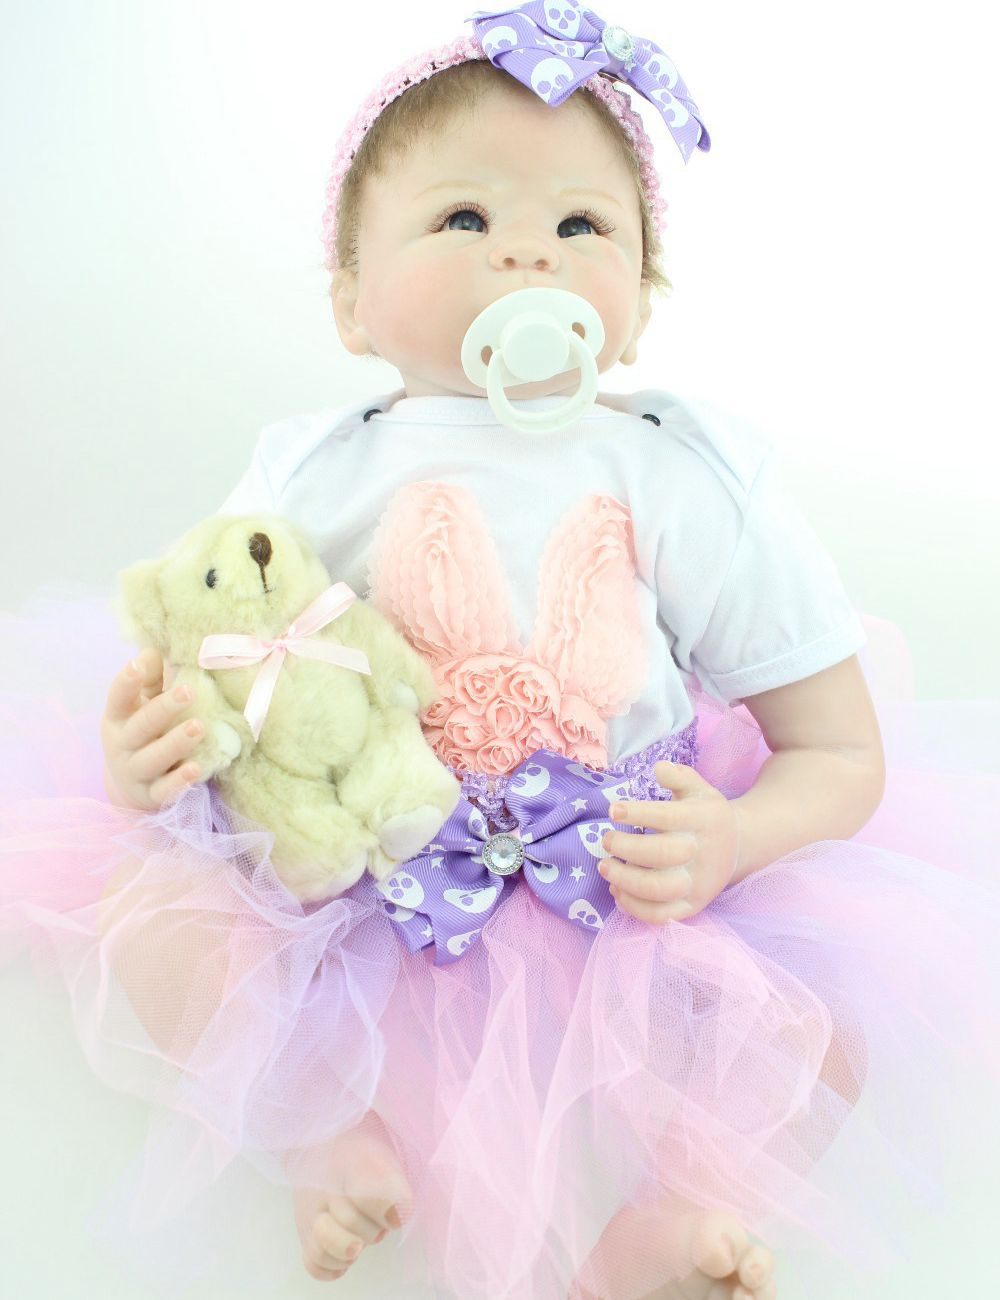 22 Lifelike Reborn Baby Sofe Silicone Girl Doll with Lace Tutus Kits Kids Collectible Toys Gift